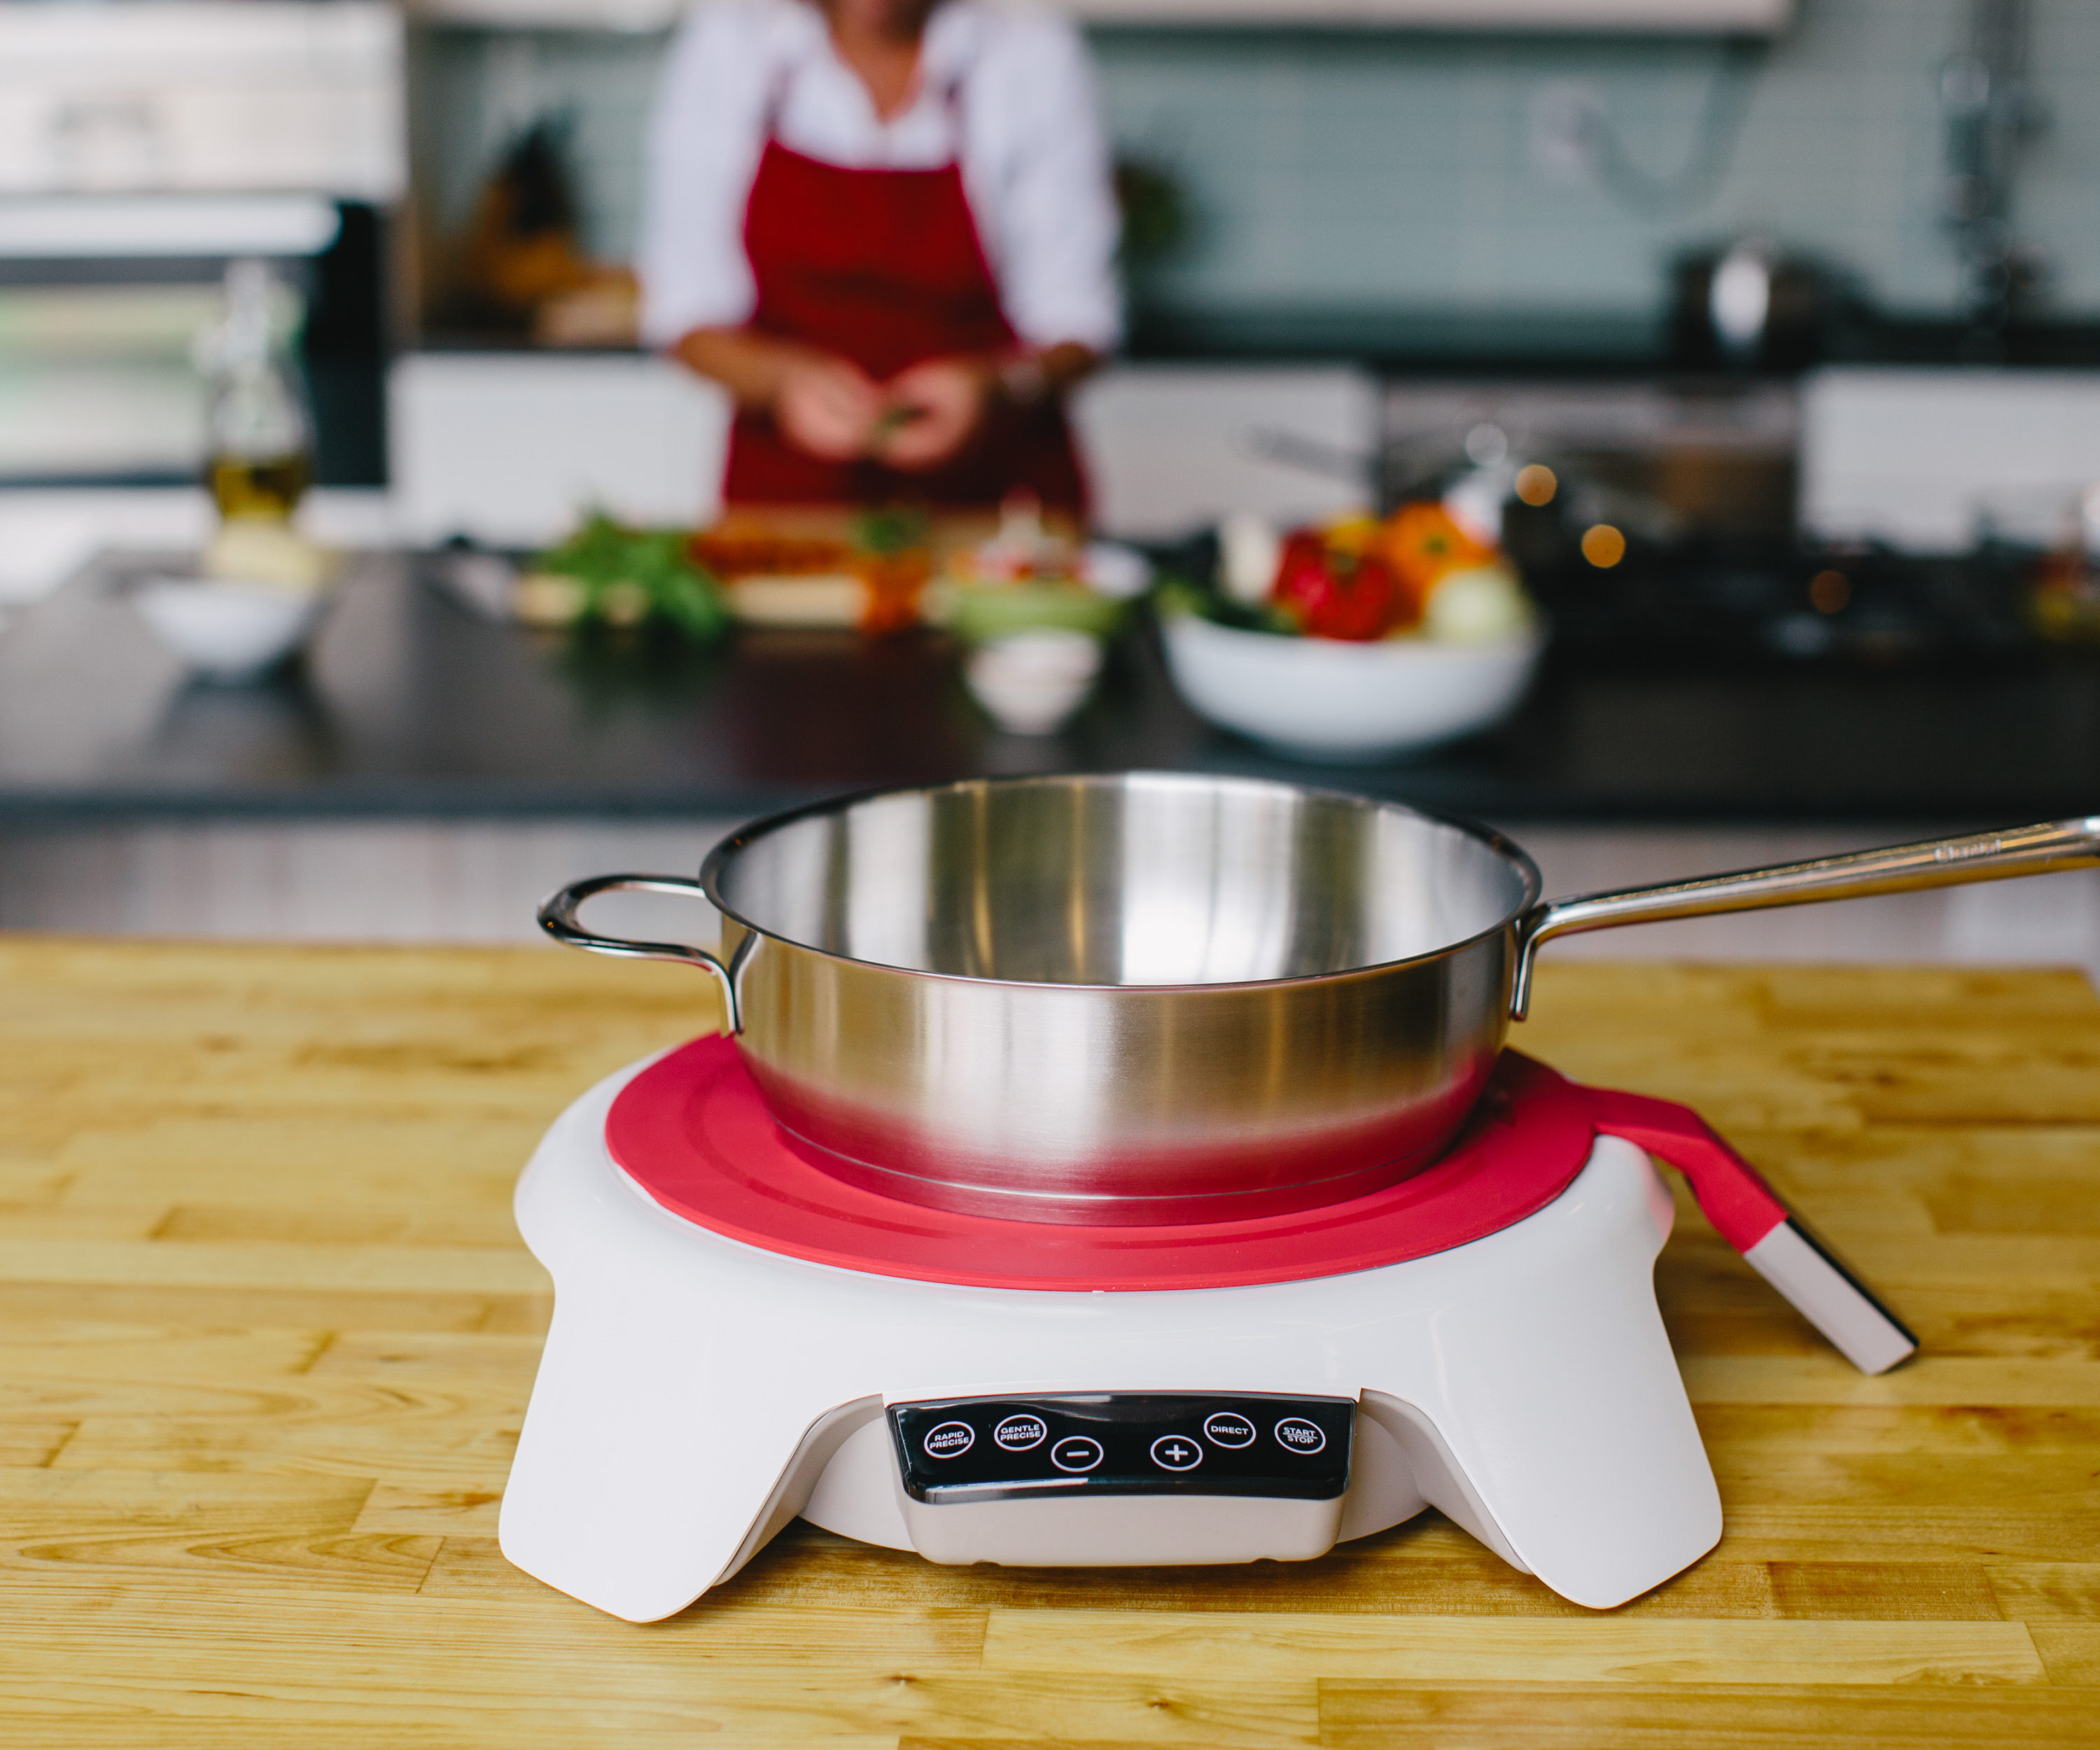 The Paragron Smart Cooking System